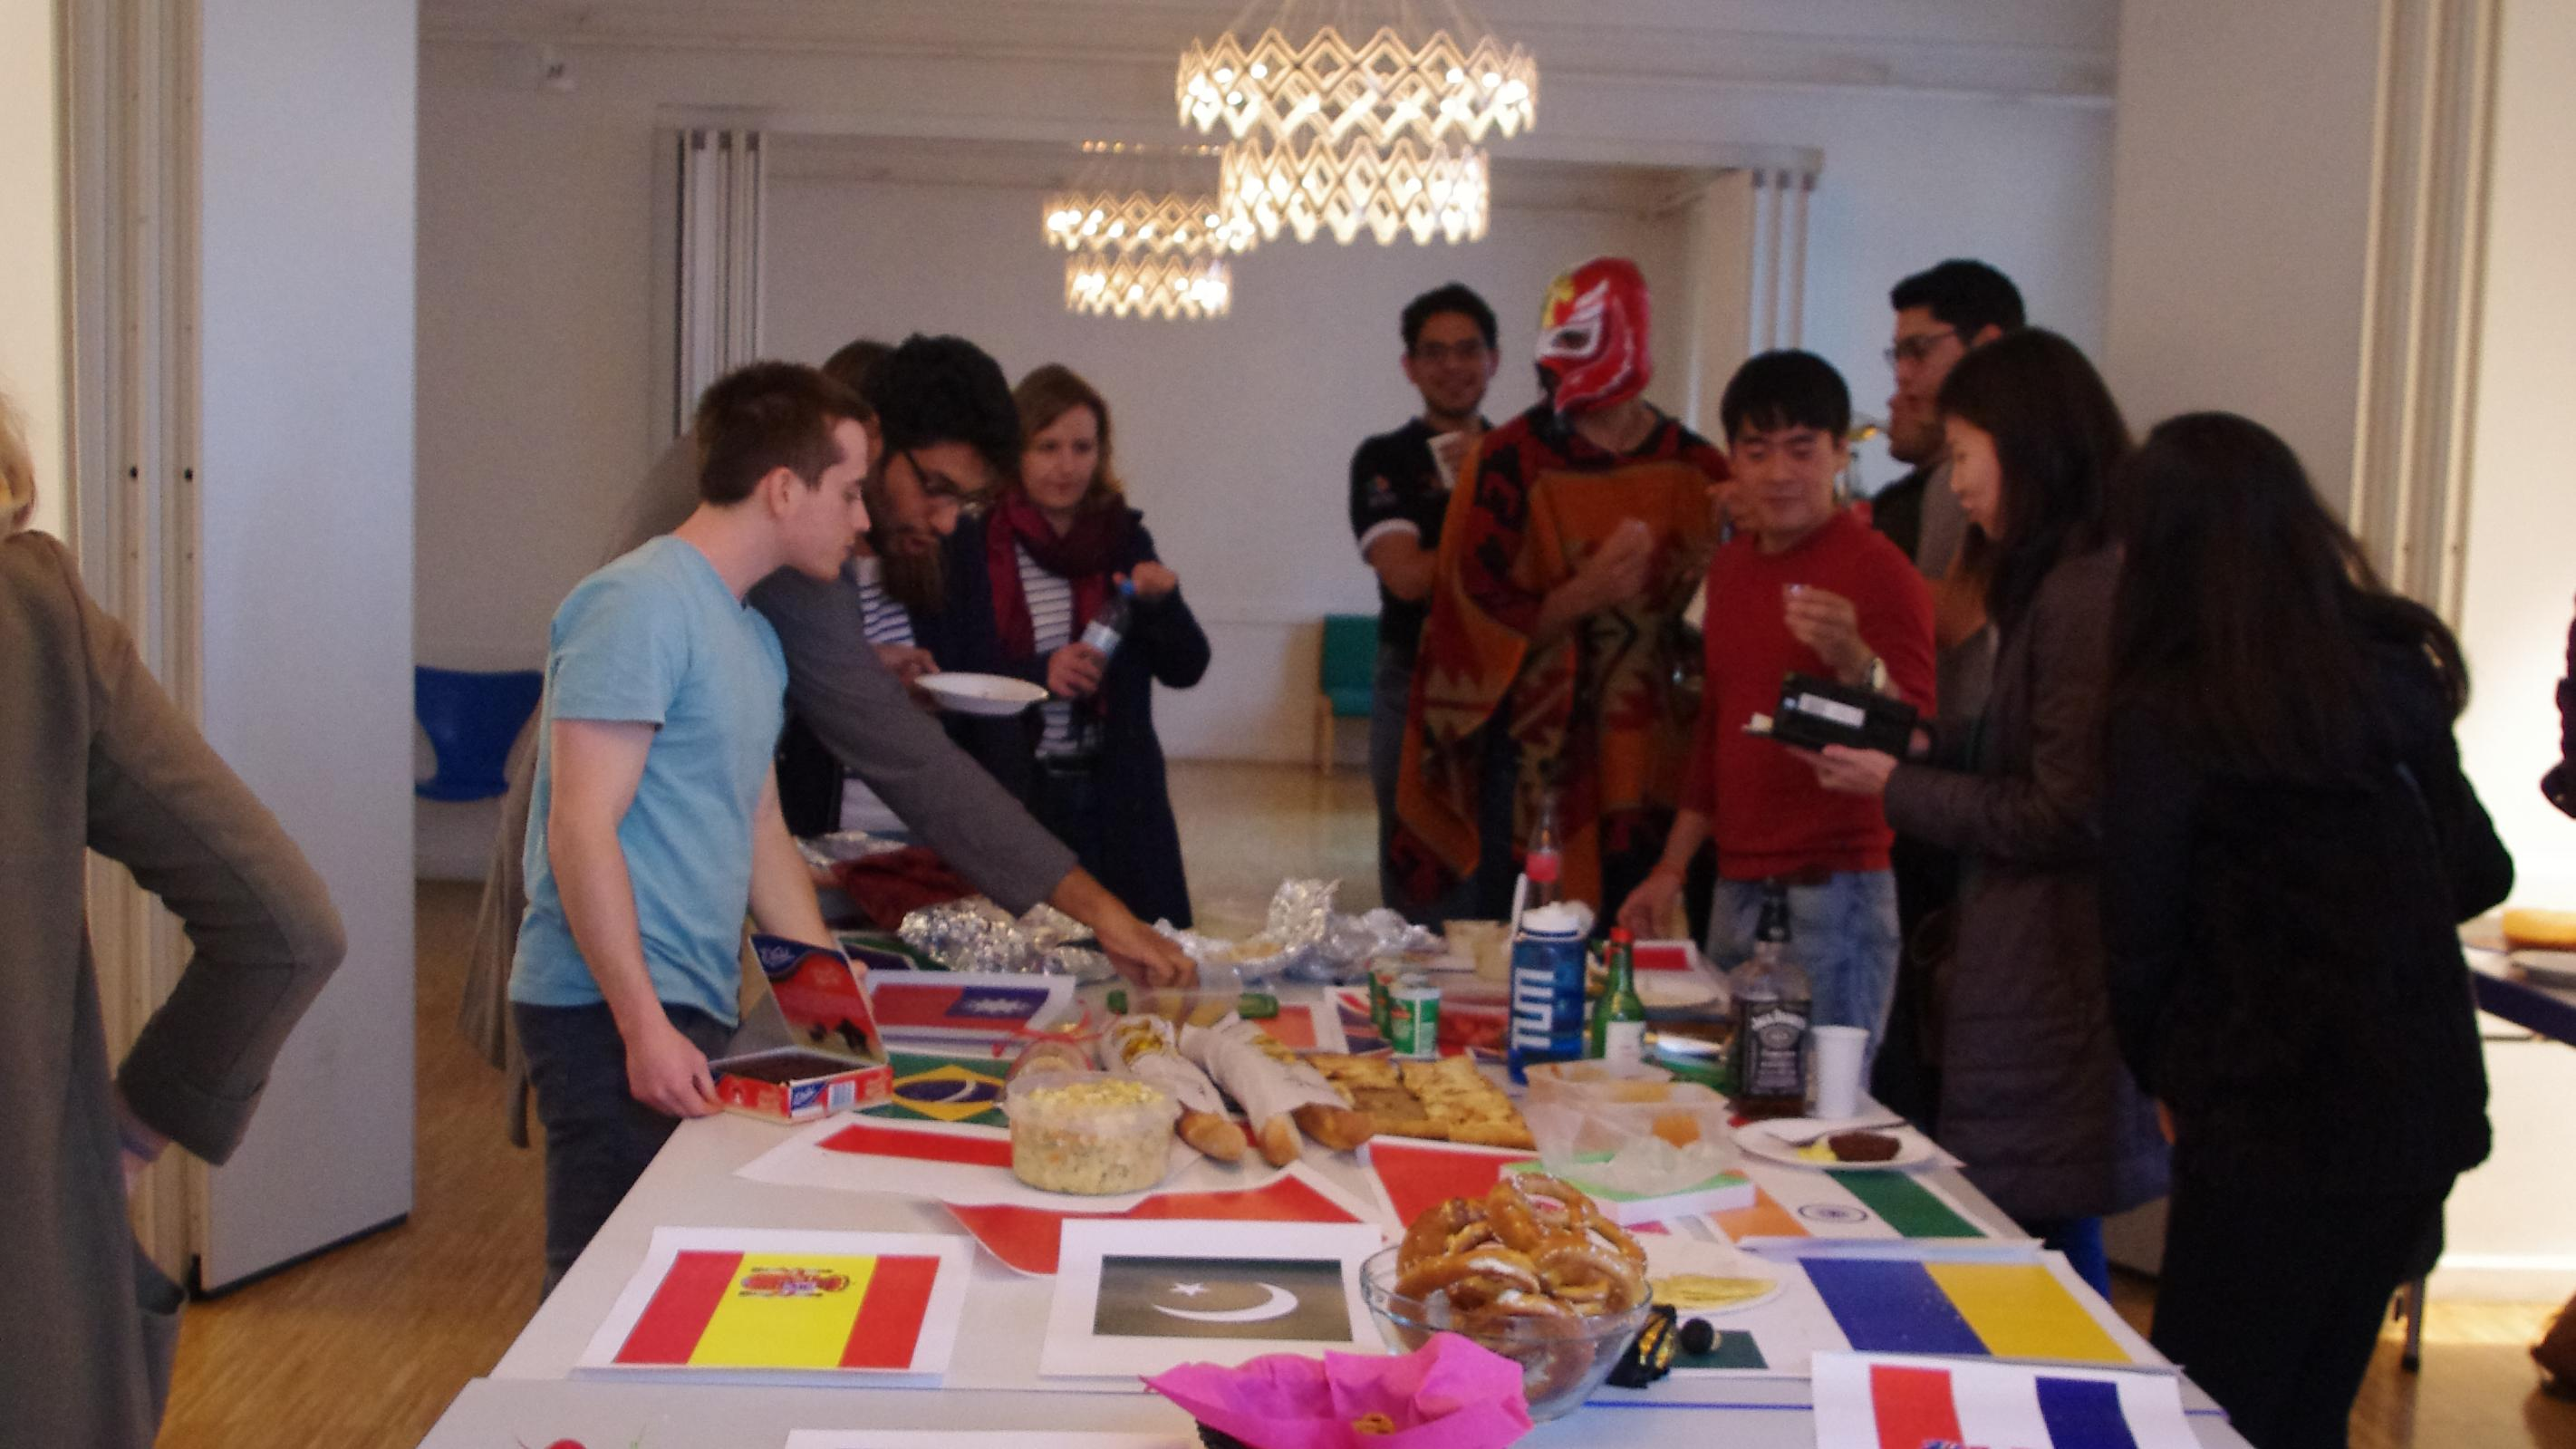 At the international evening, we eat together...(Image: Laetitia Eichner)